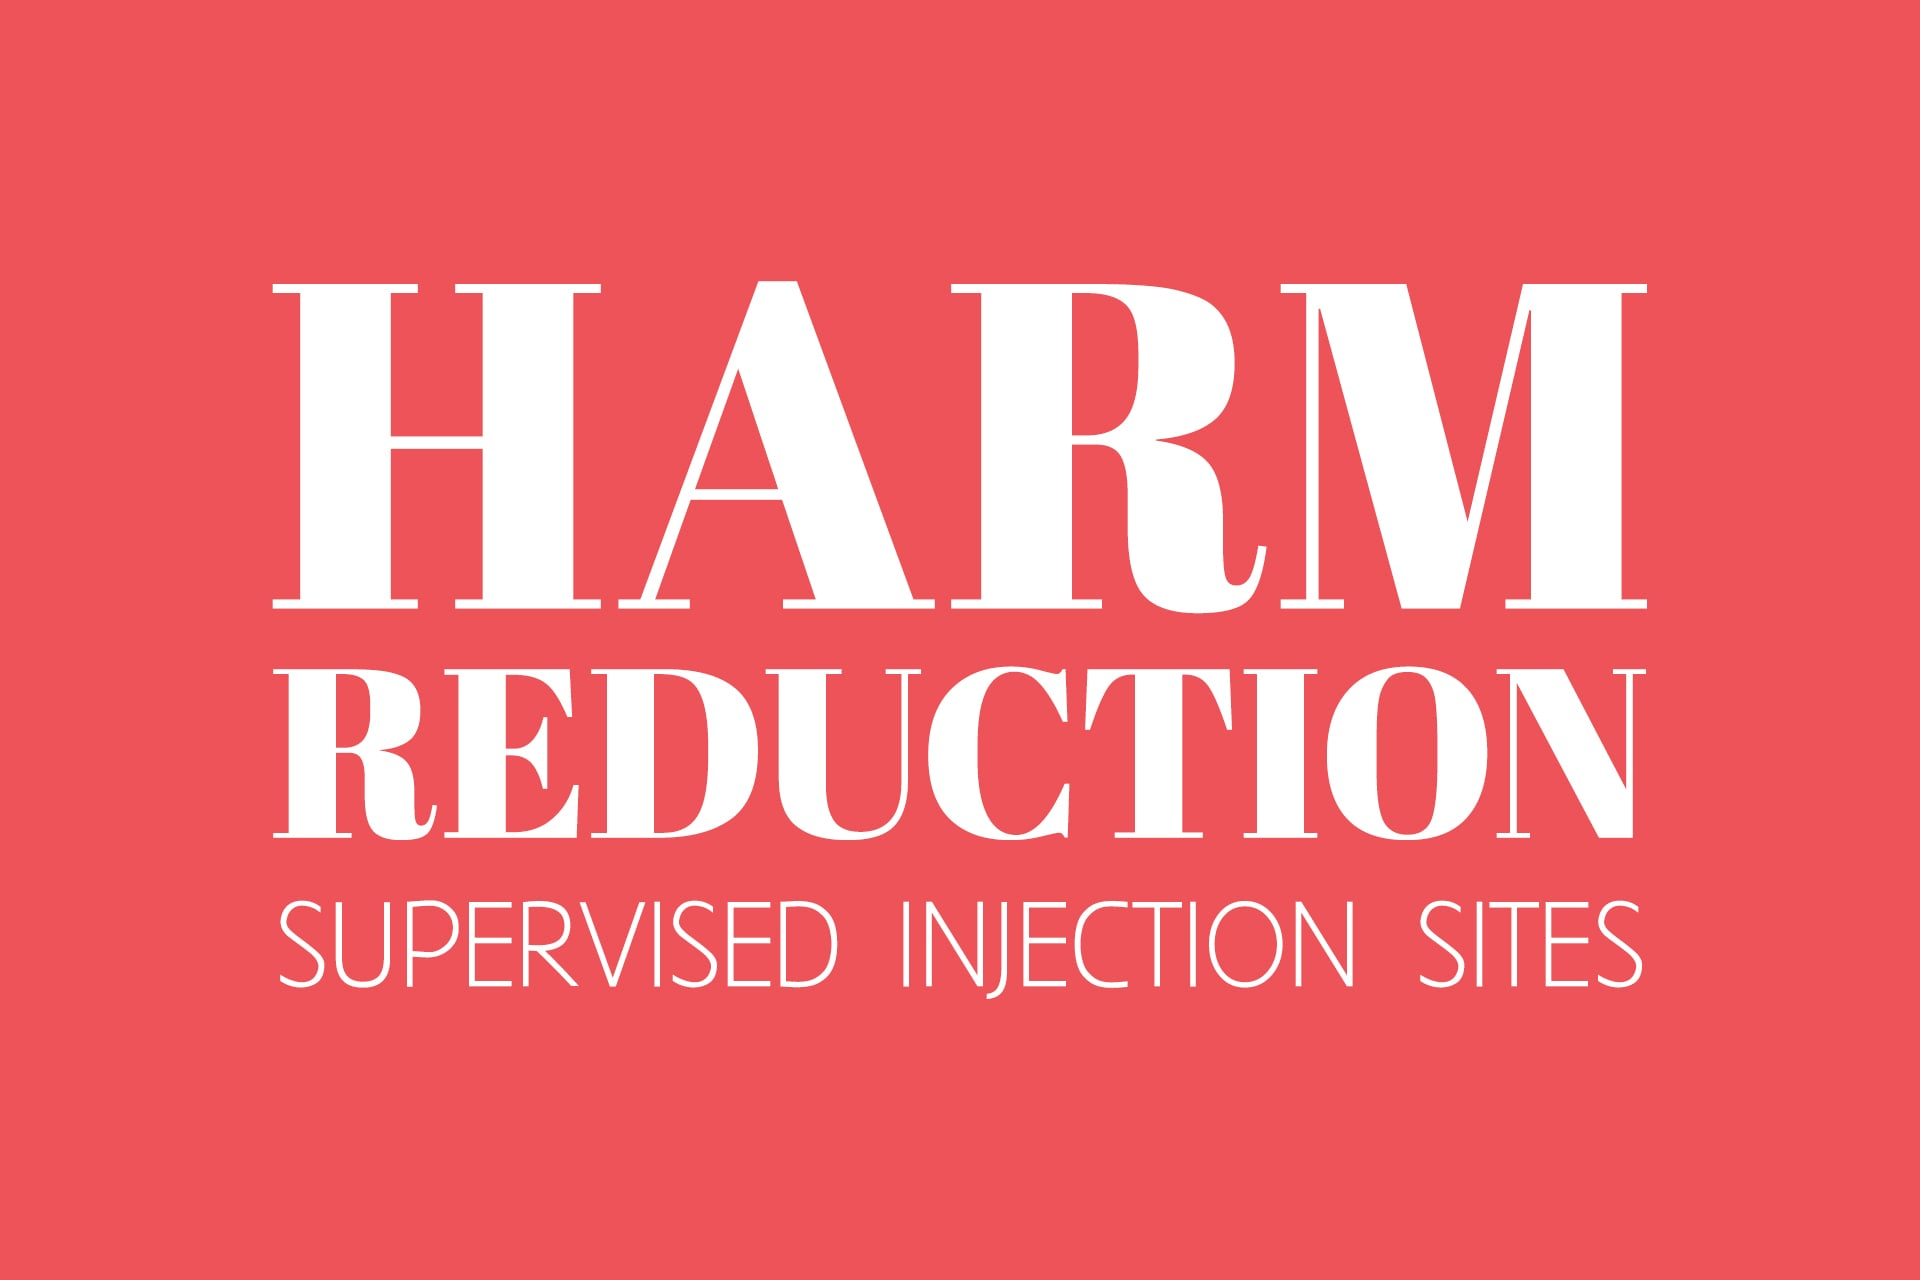 Harm Reduction – Supervised Injection Sites